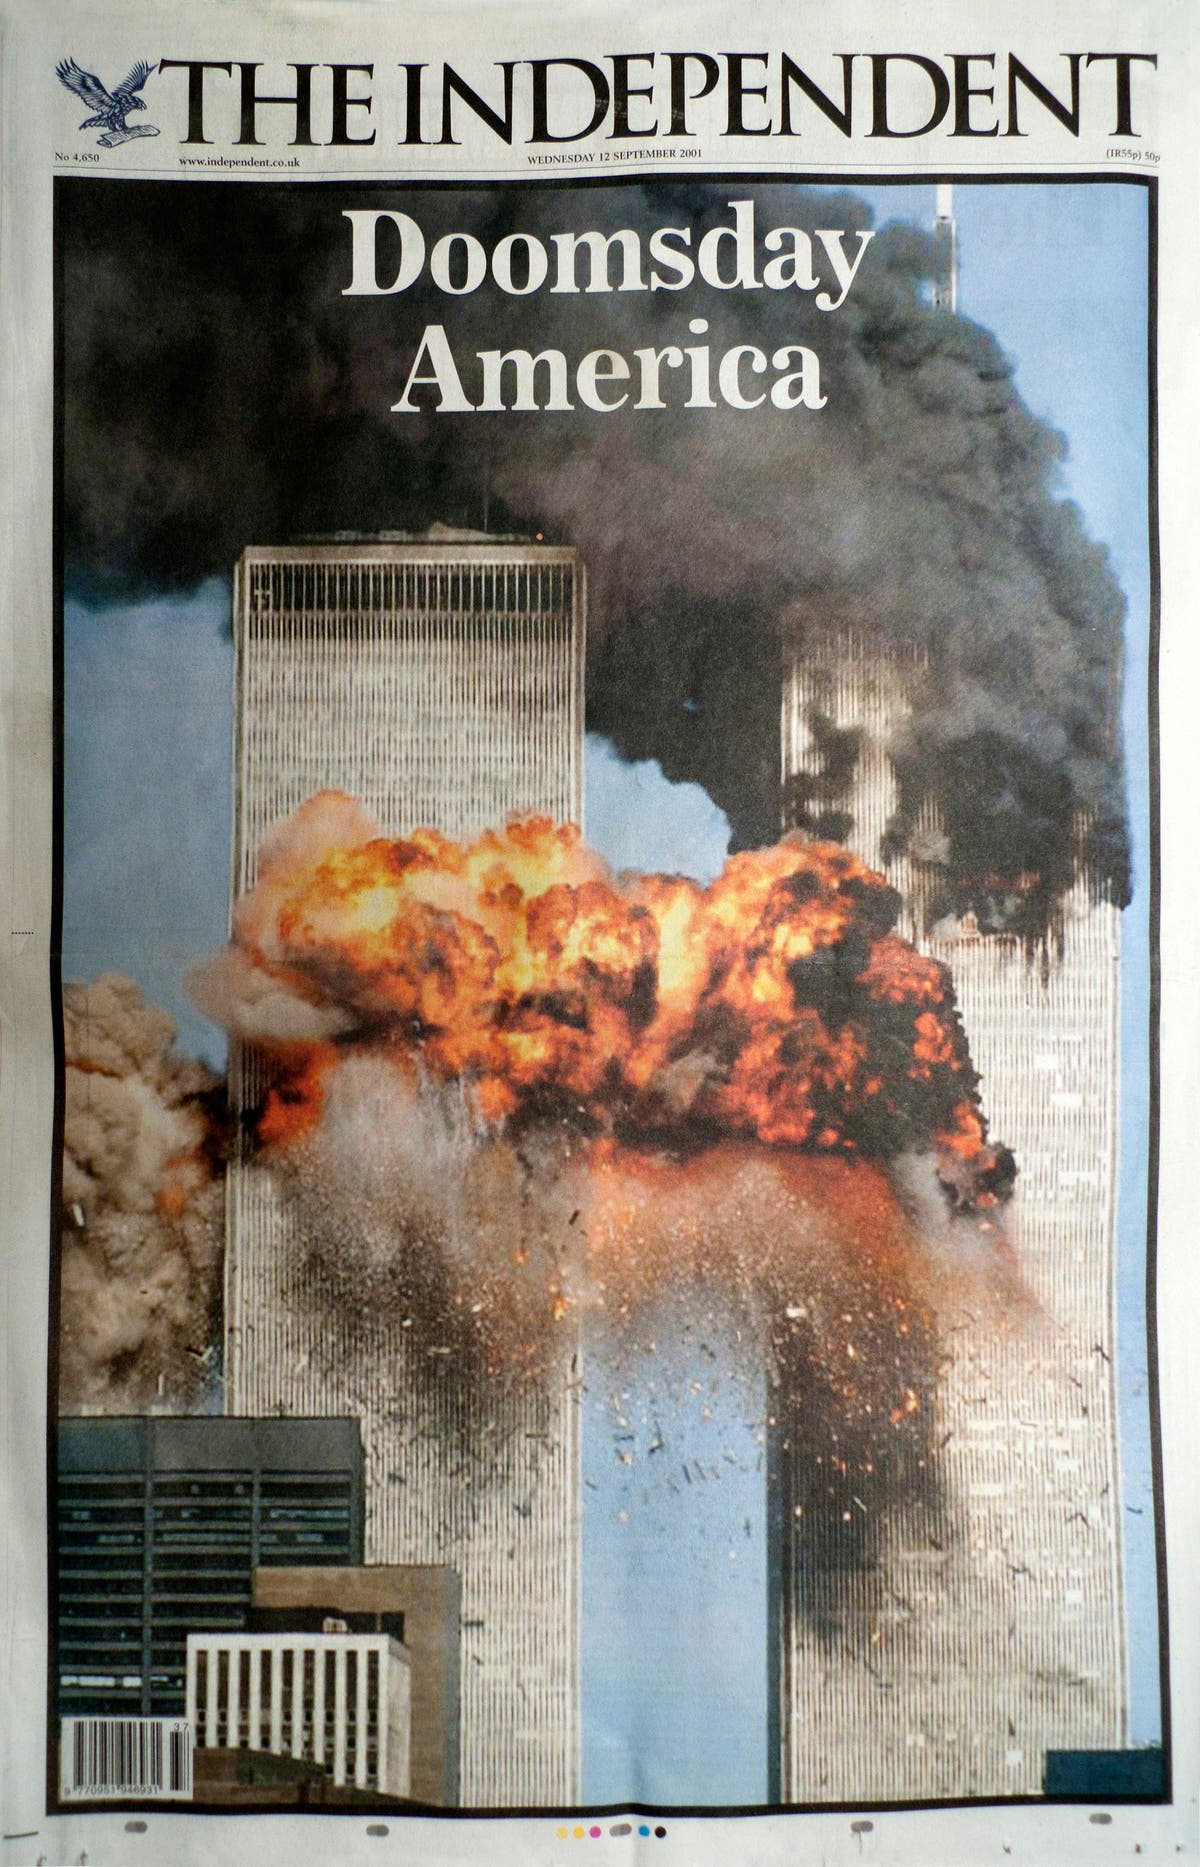 A look back at how The Independent covered 9/11's chilling aftermath